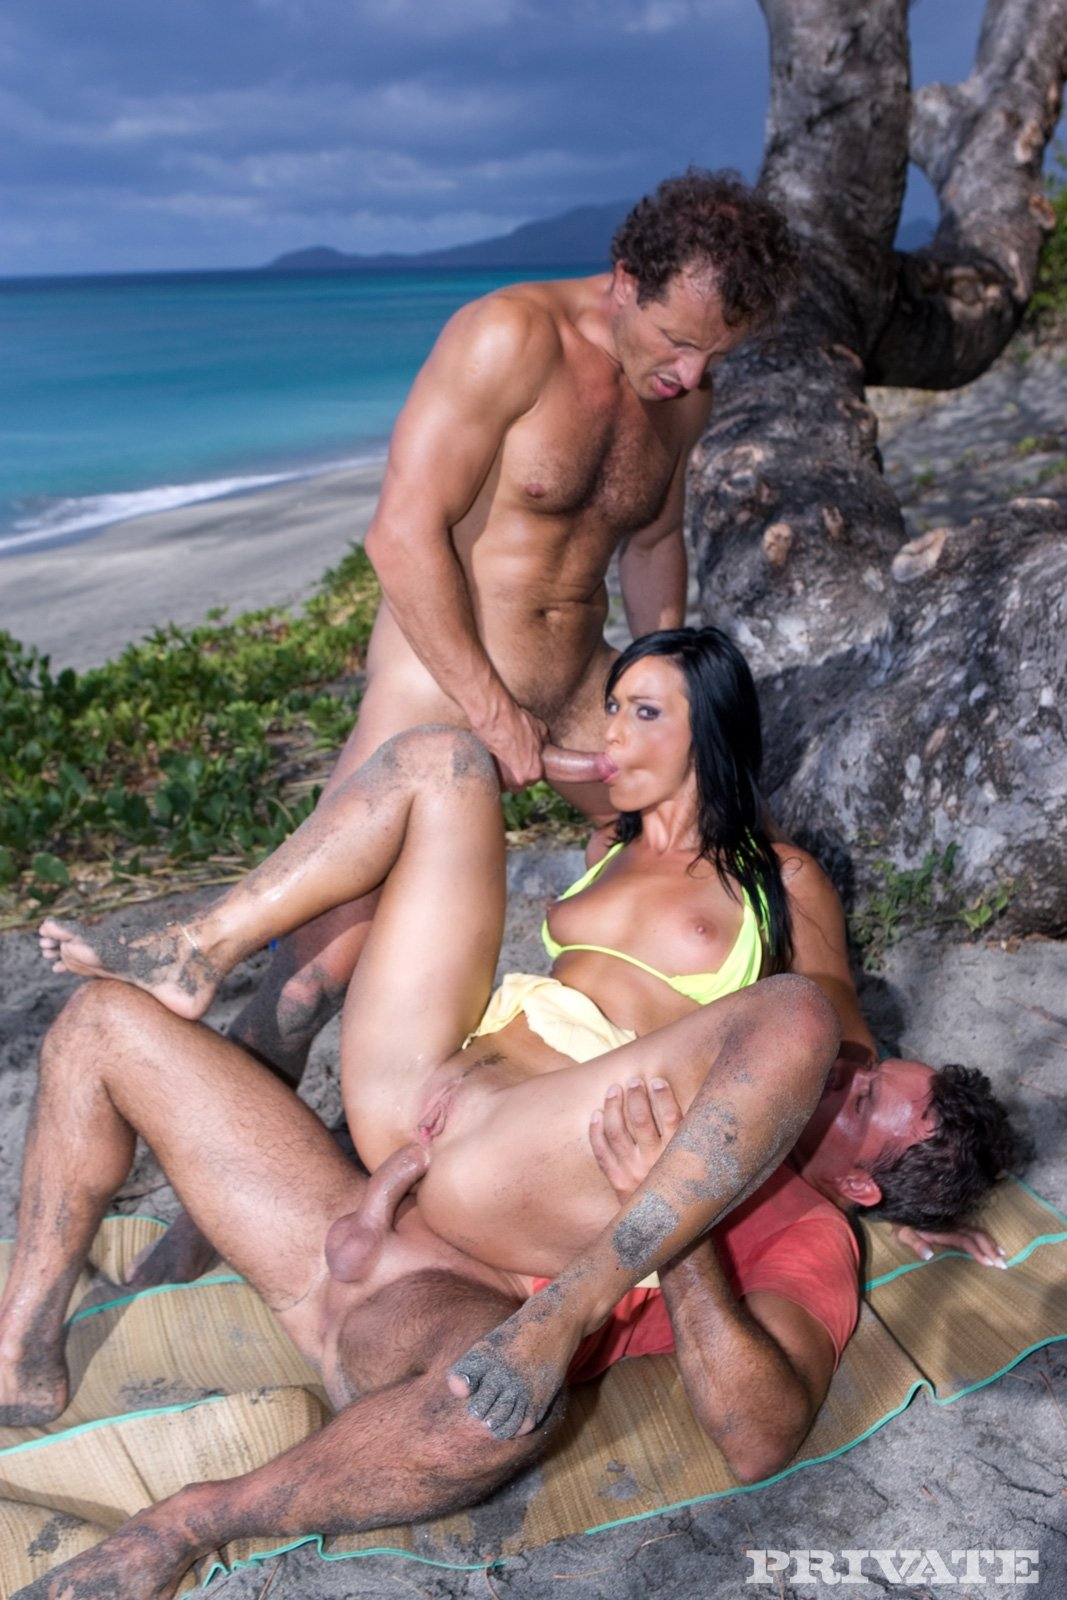 erotic nikki tubes sex in the beach nude